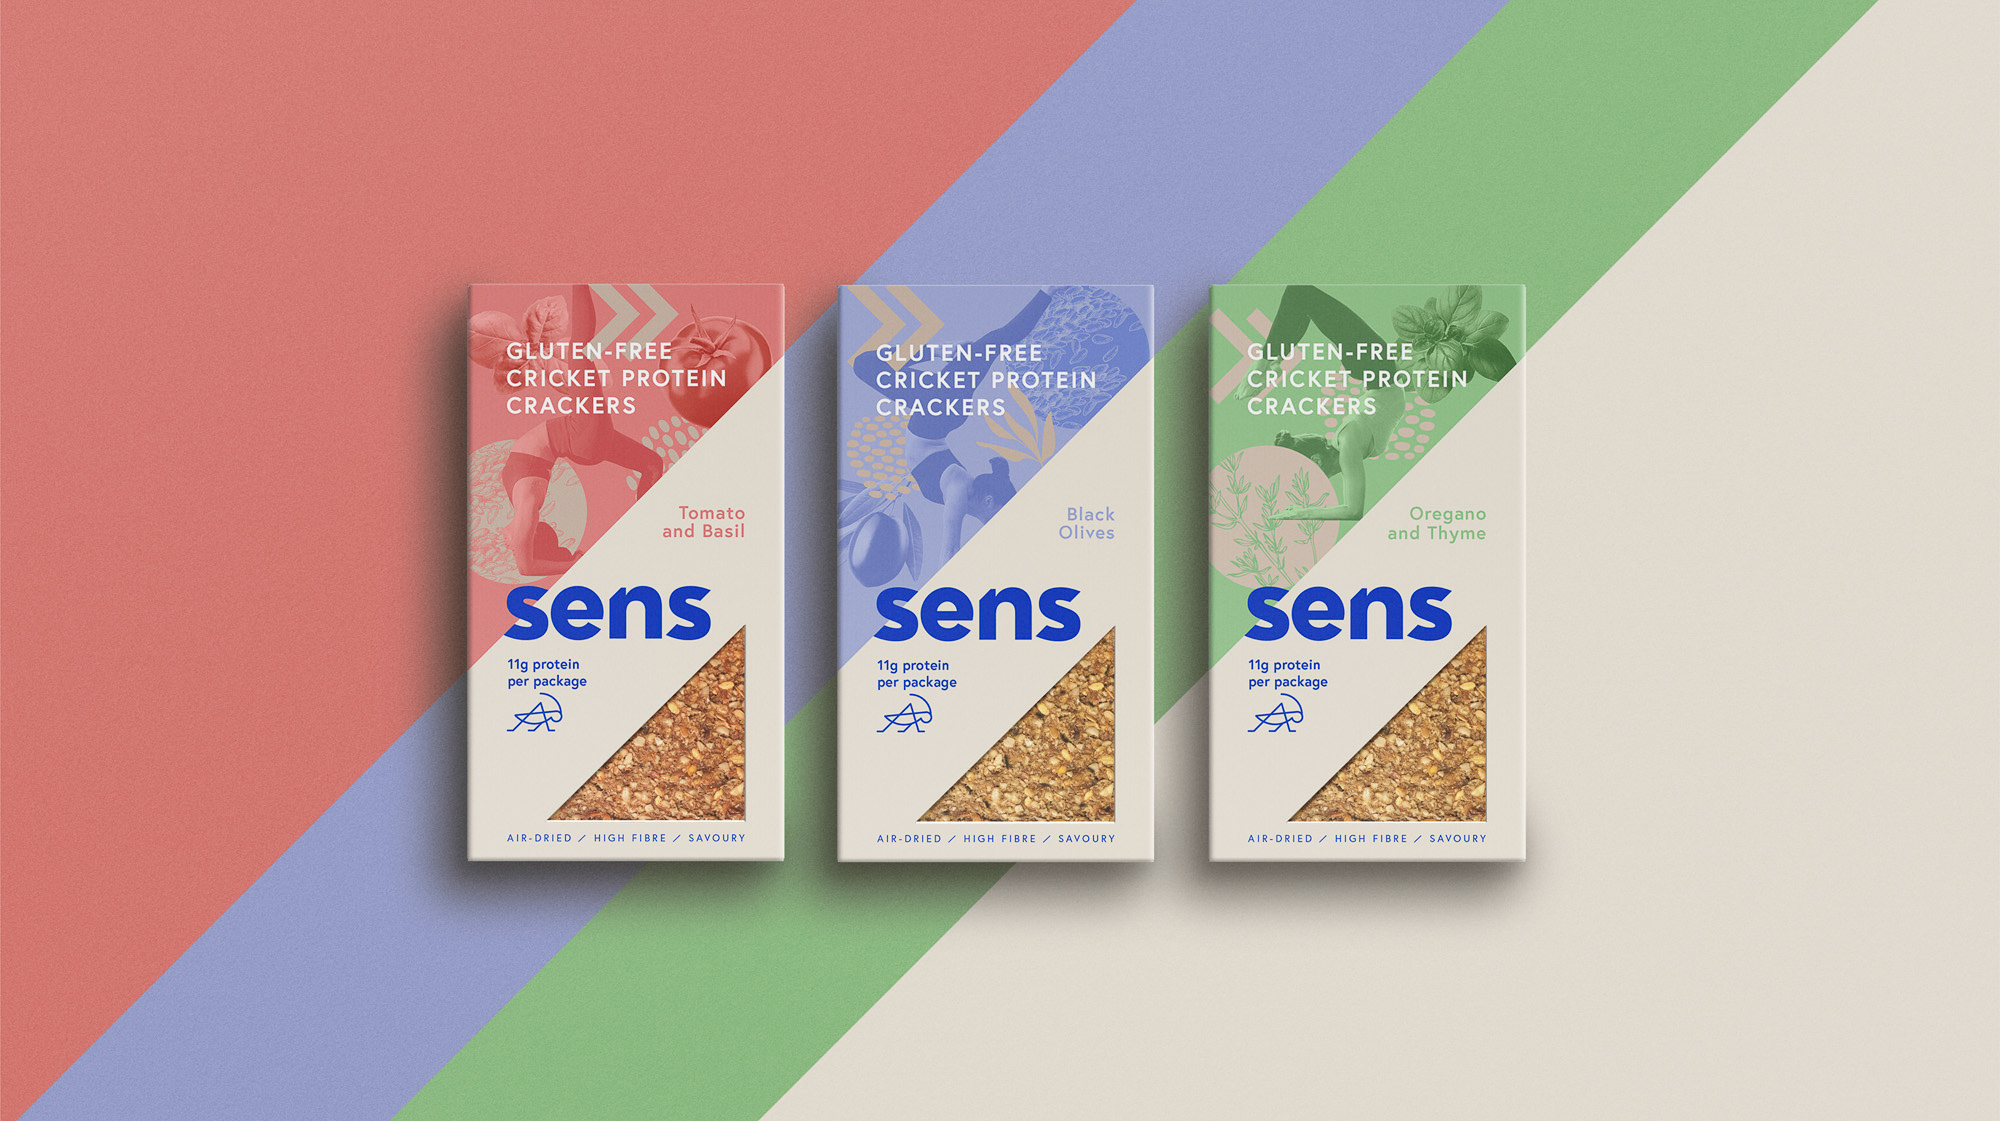 Making Sens of Eating Insects the New Normal Designed by Andreea Bora